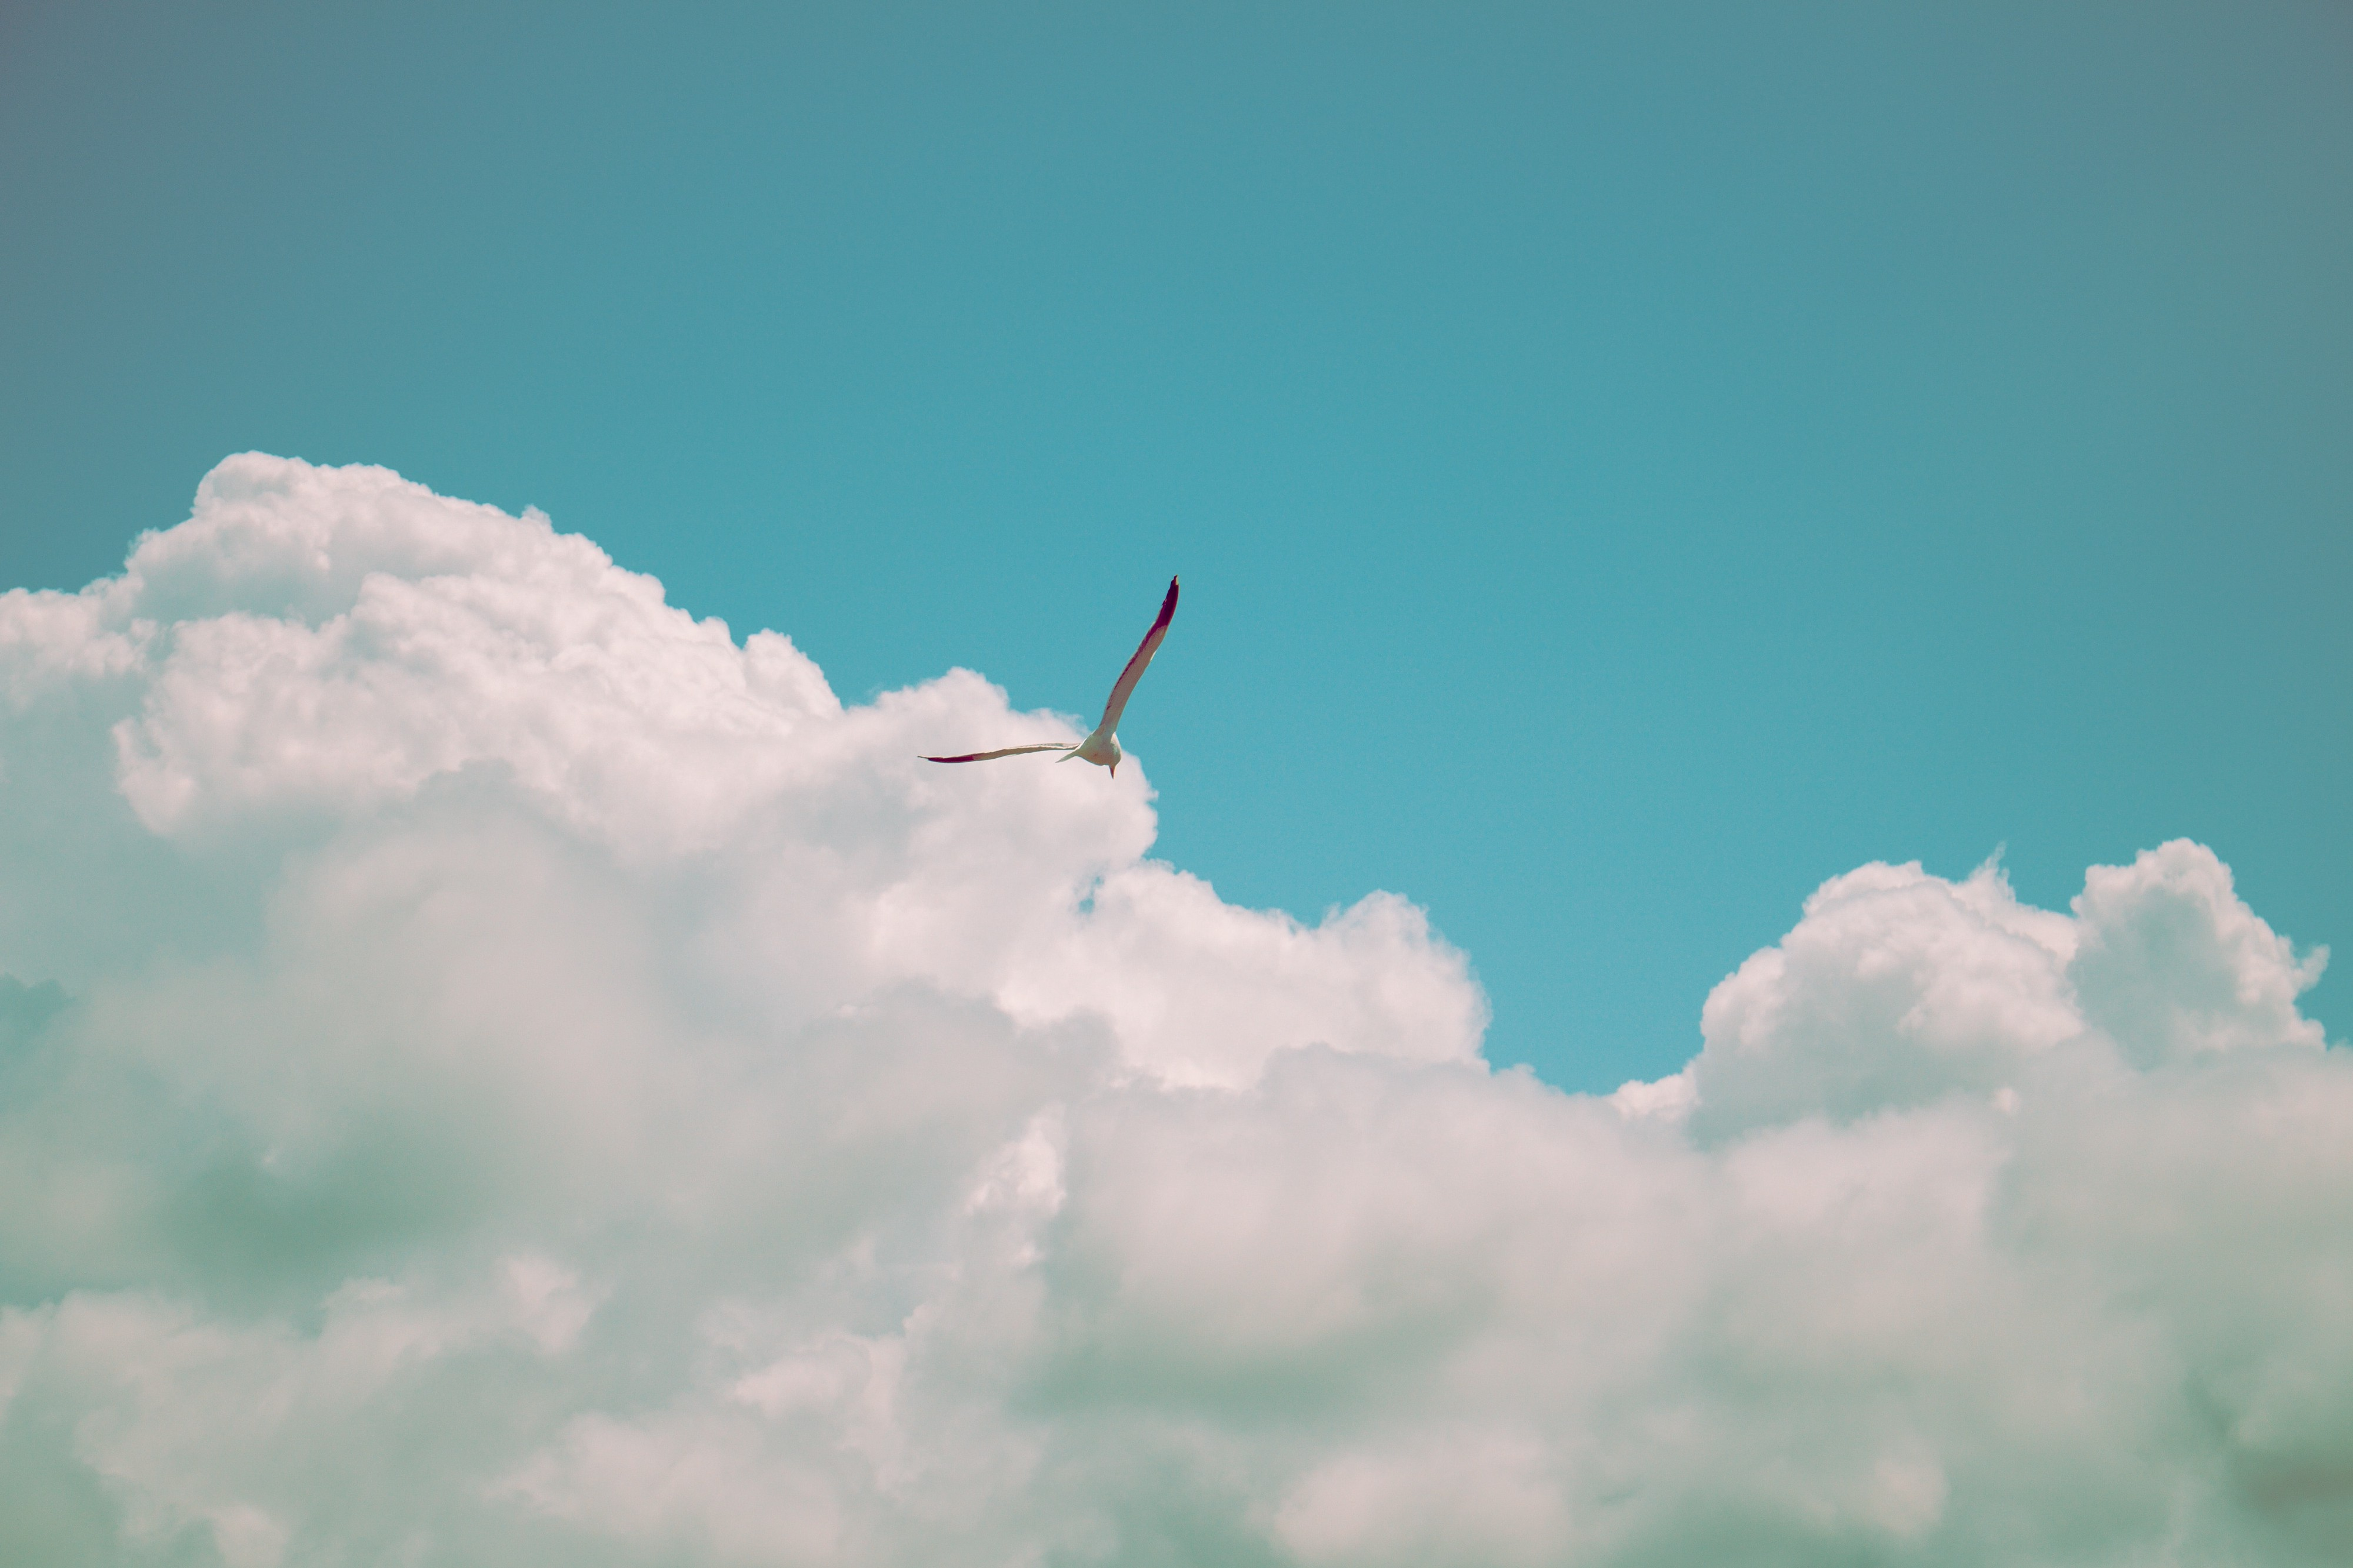 Bird soaring in the sky among the clouds depicting freedom and success by selling a business